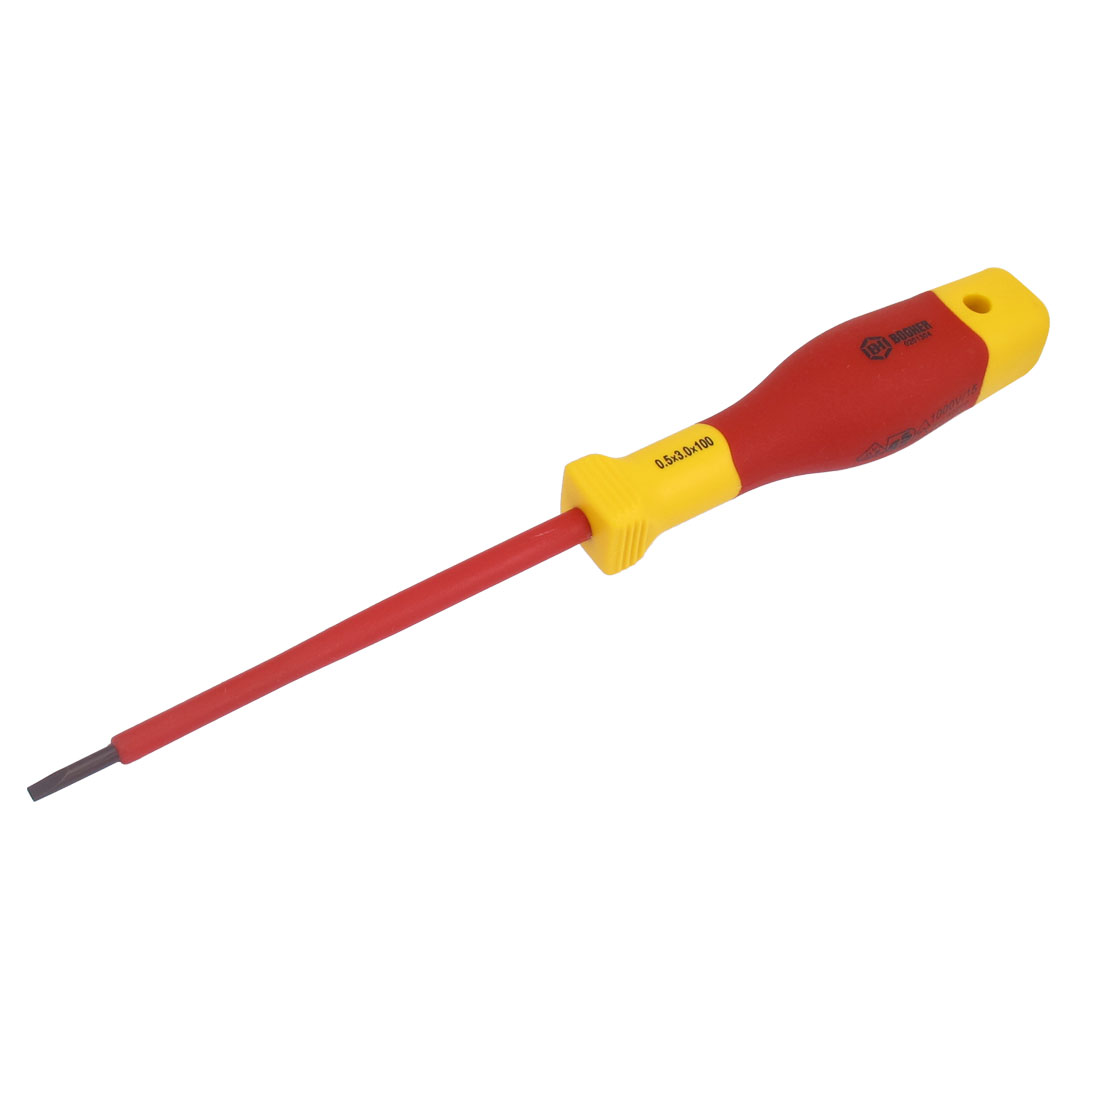 BOOHER Authorized 1000V 3mm Tip Width VDE Insulated Slotted Screwdriver